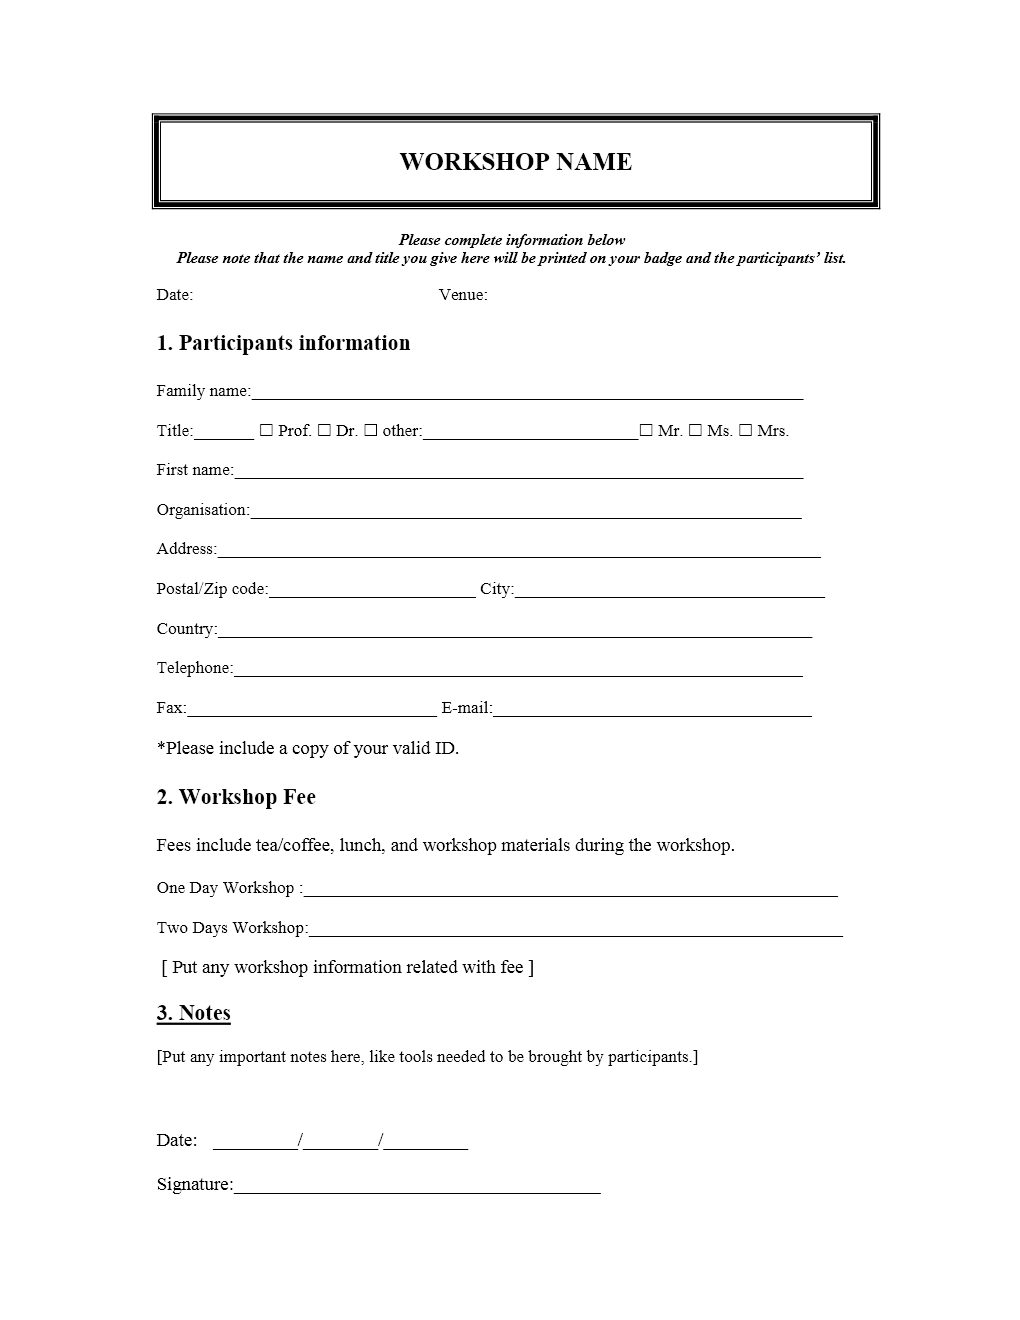 Registration Form Template Word | charlotte clergy coalition